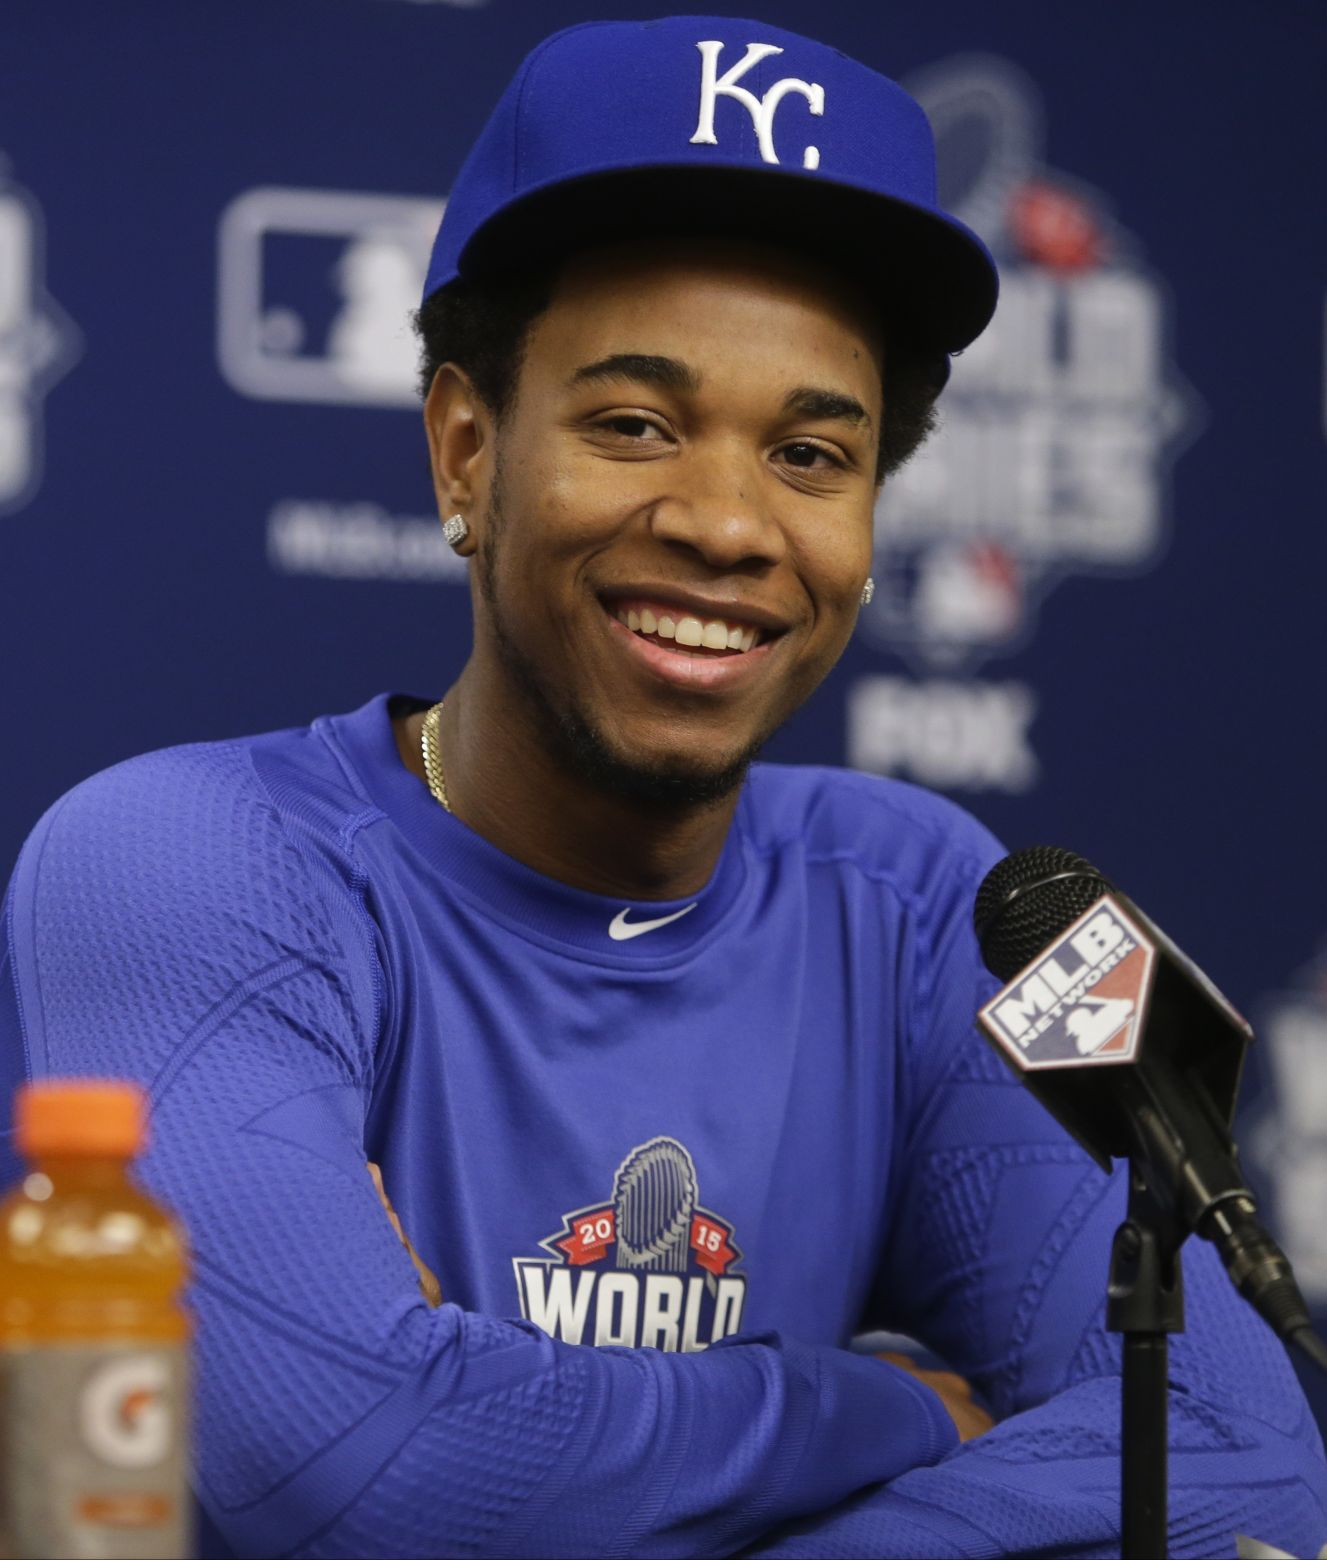 Two MLB Players Killed in Separate Crashes in Dominican Republic